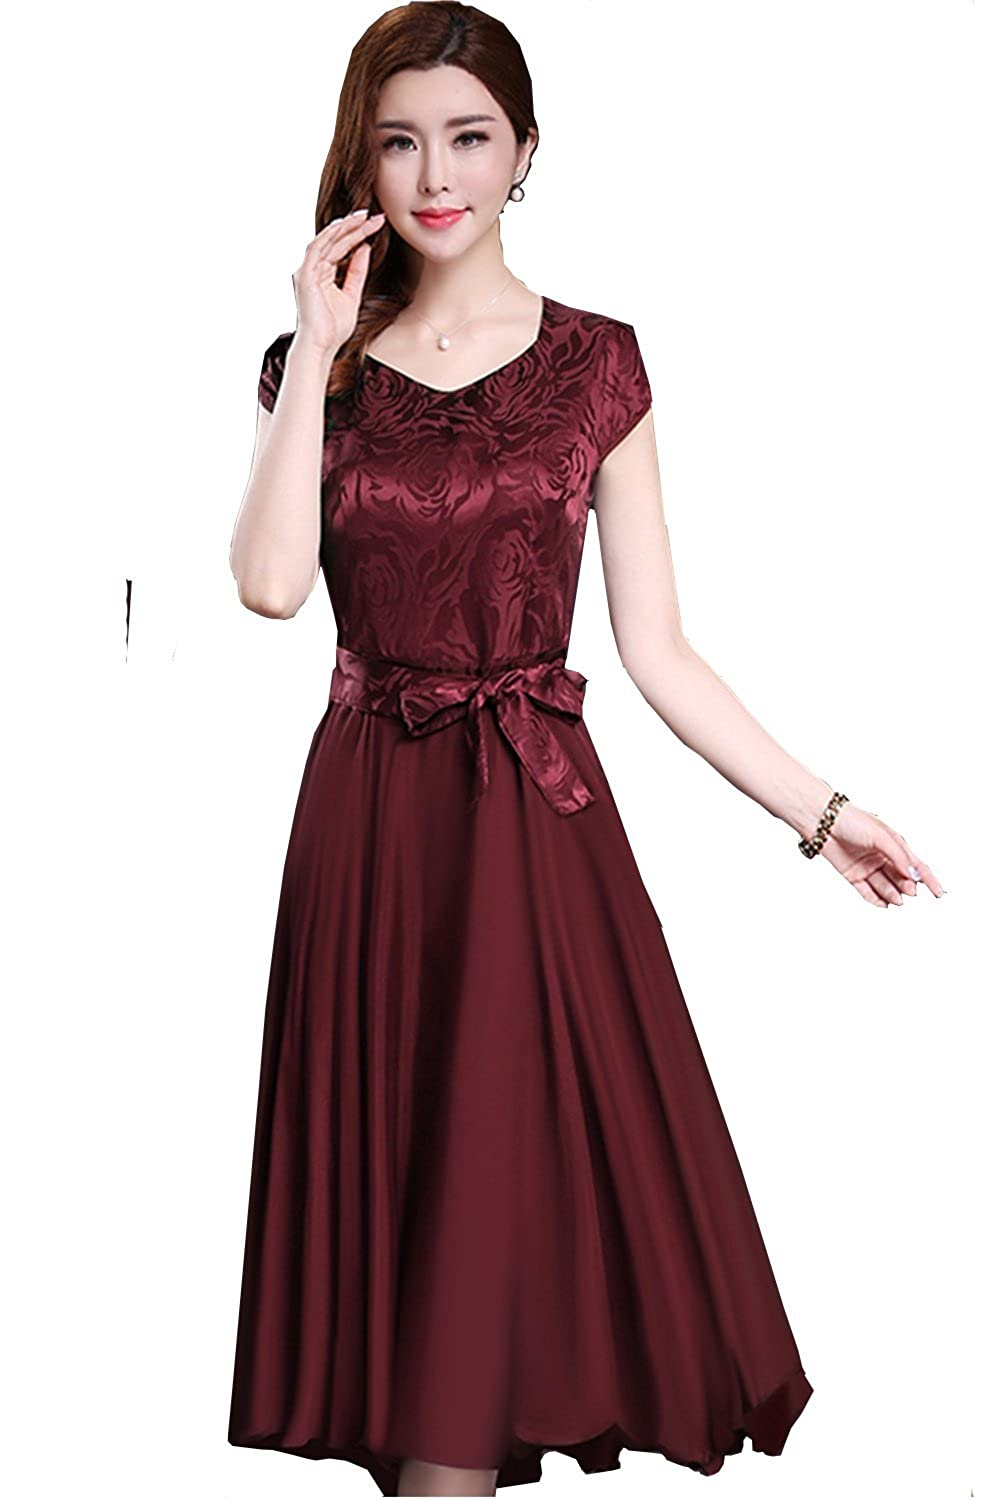 Unomatch Women Silk Printed Top Bow Waist Prom Dress Red Vine Small, Red